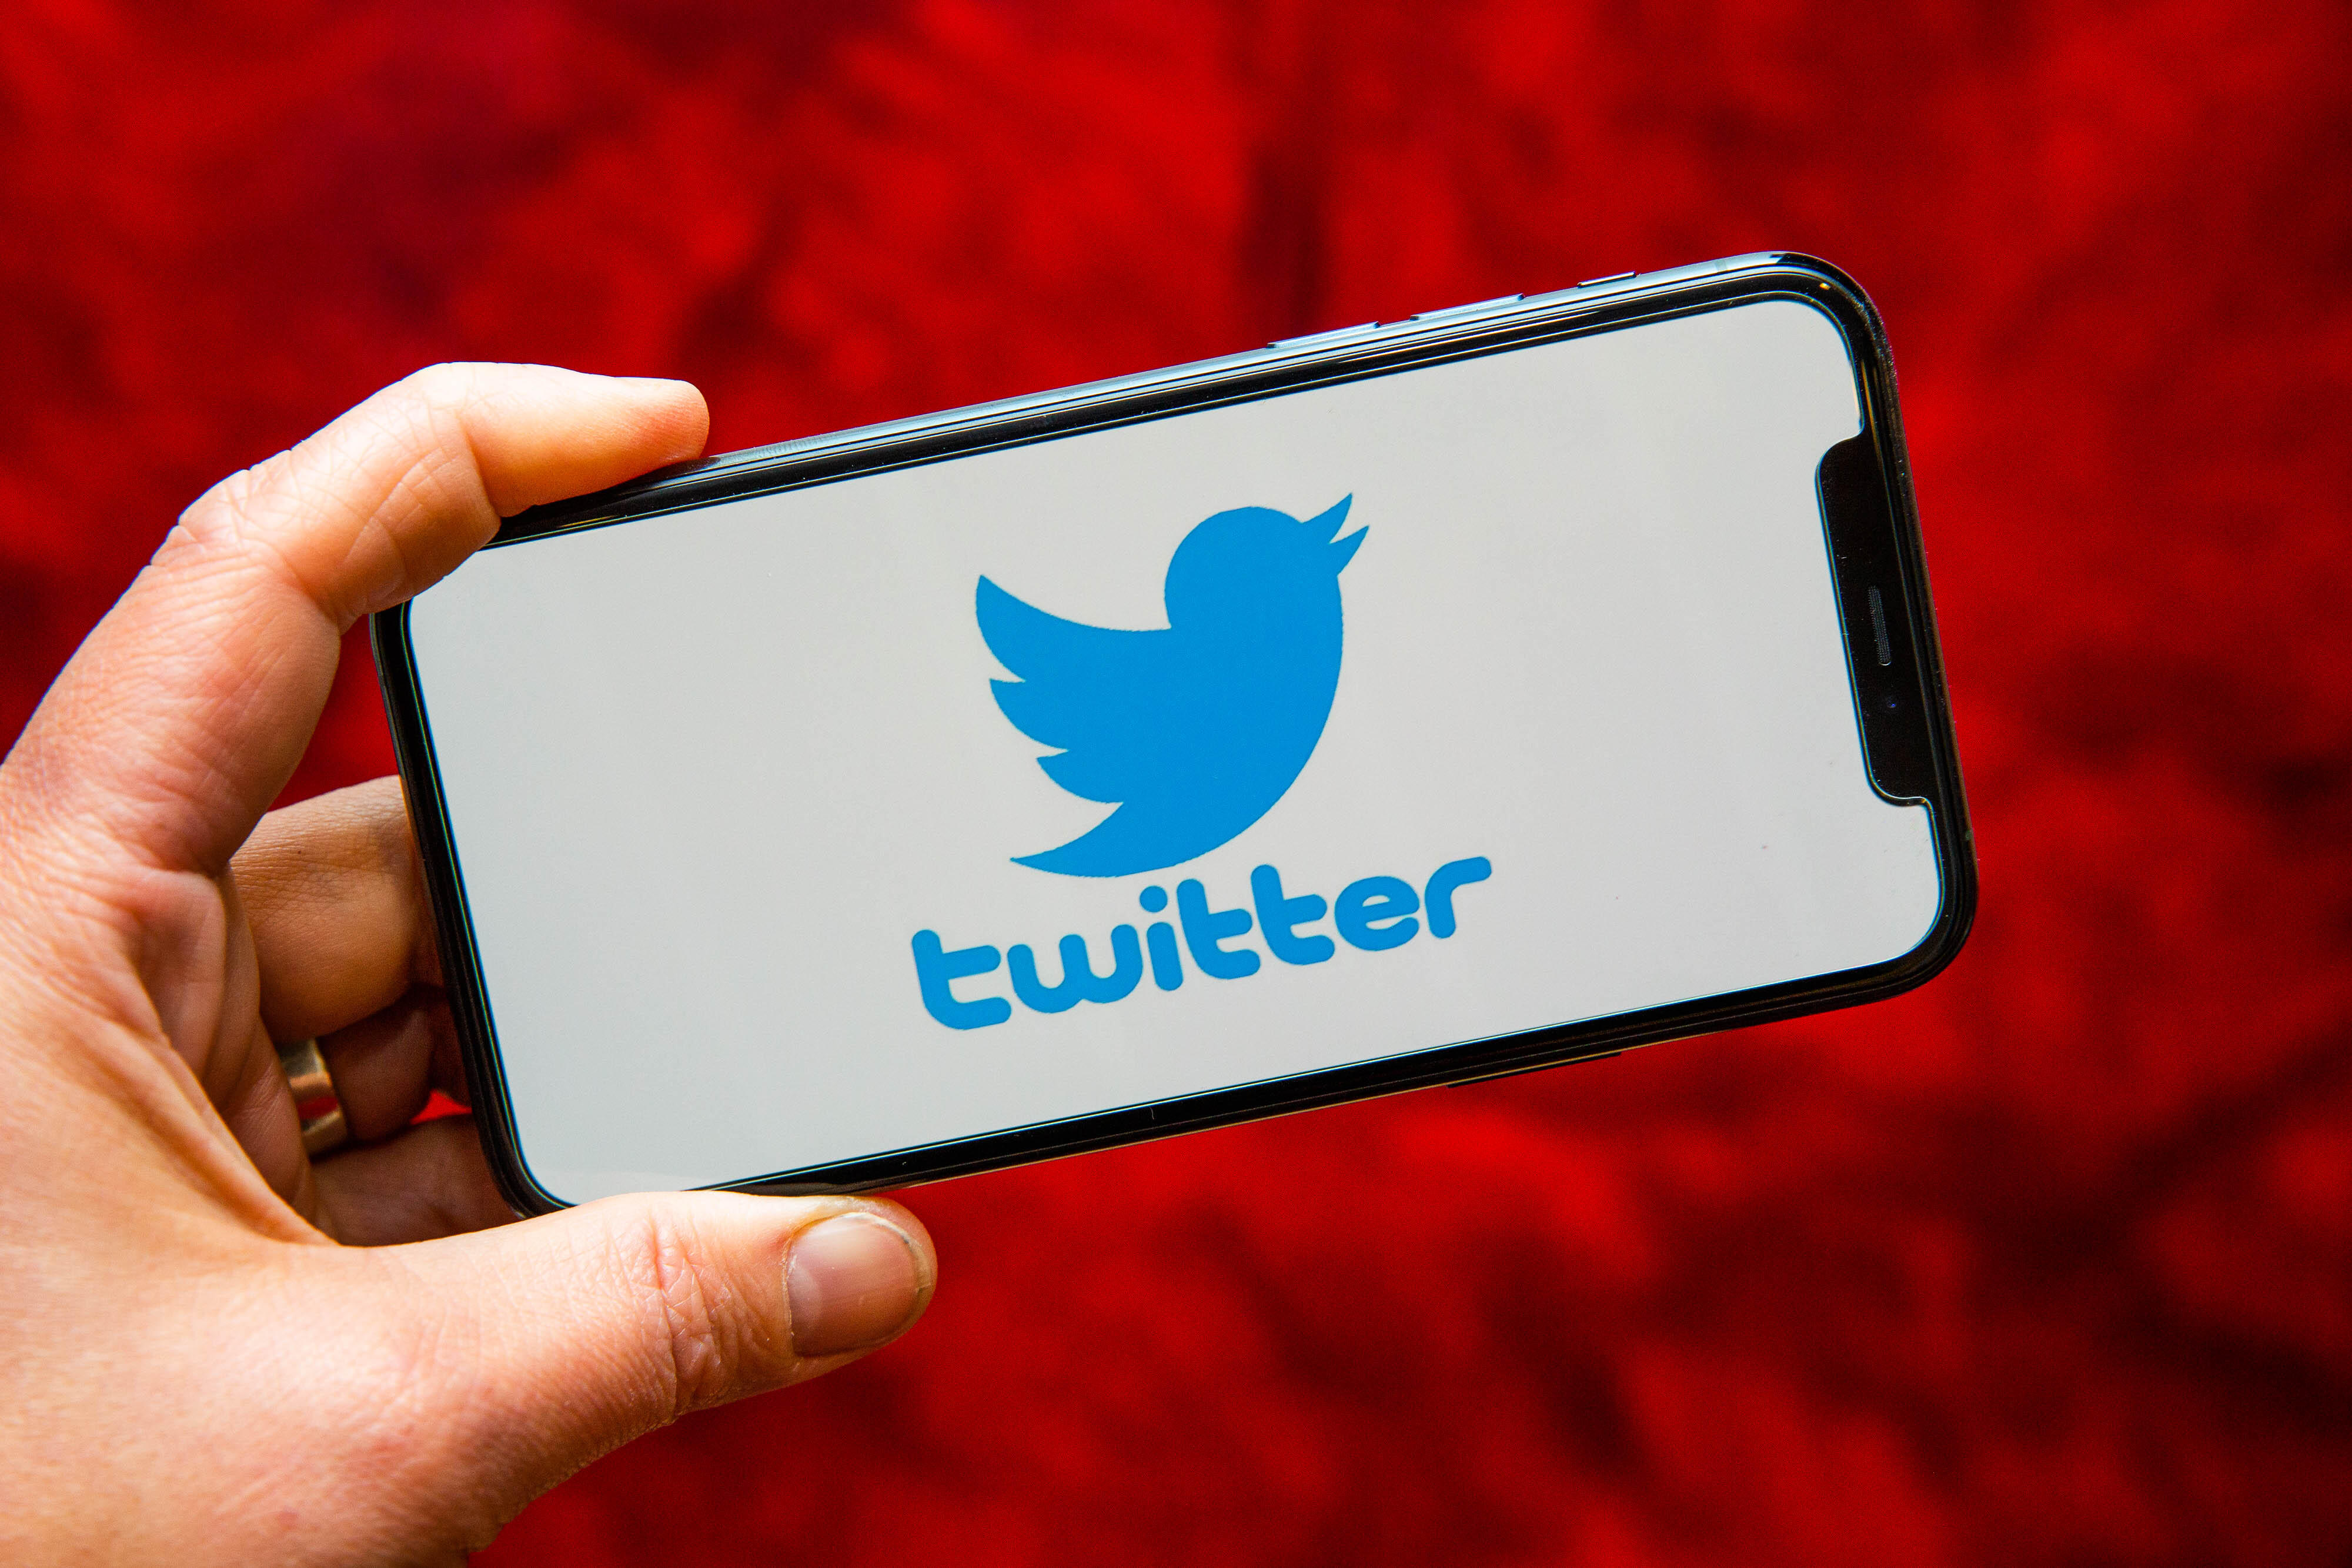 Twitter Spaces adds ability for some hosts to create ticketed gatherings